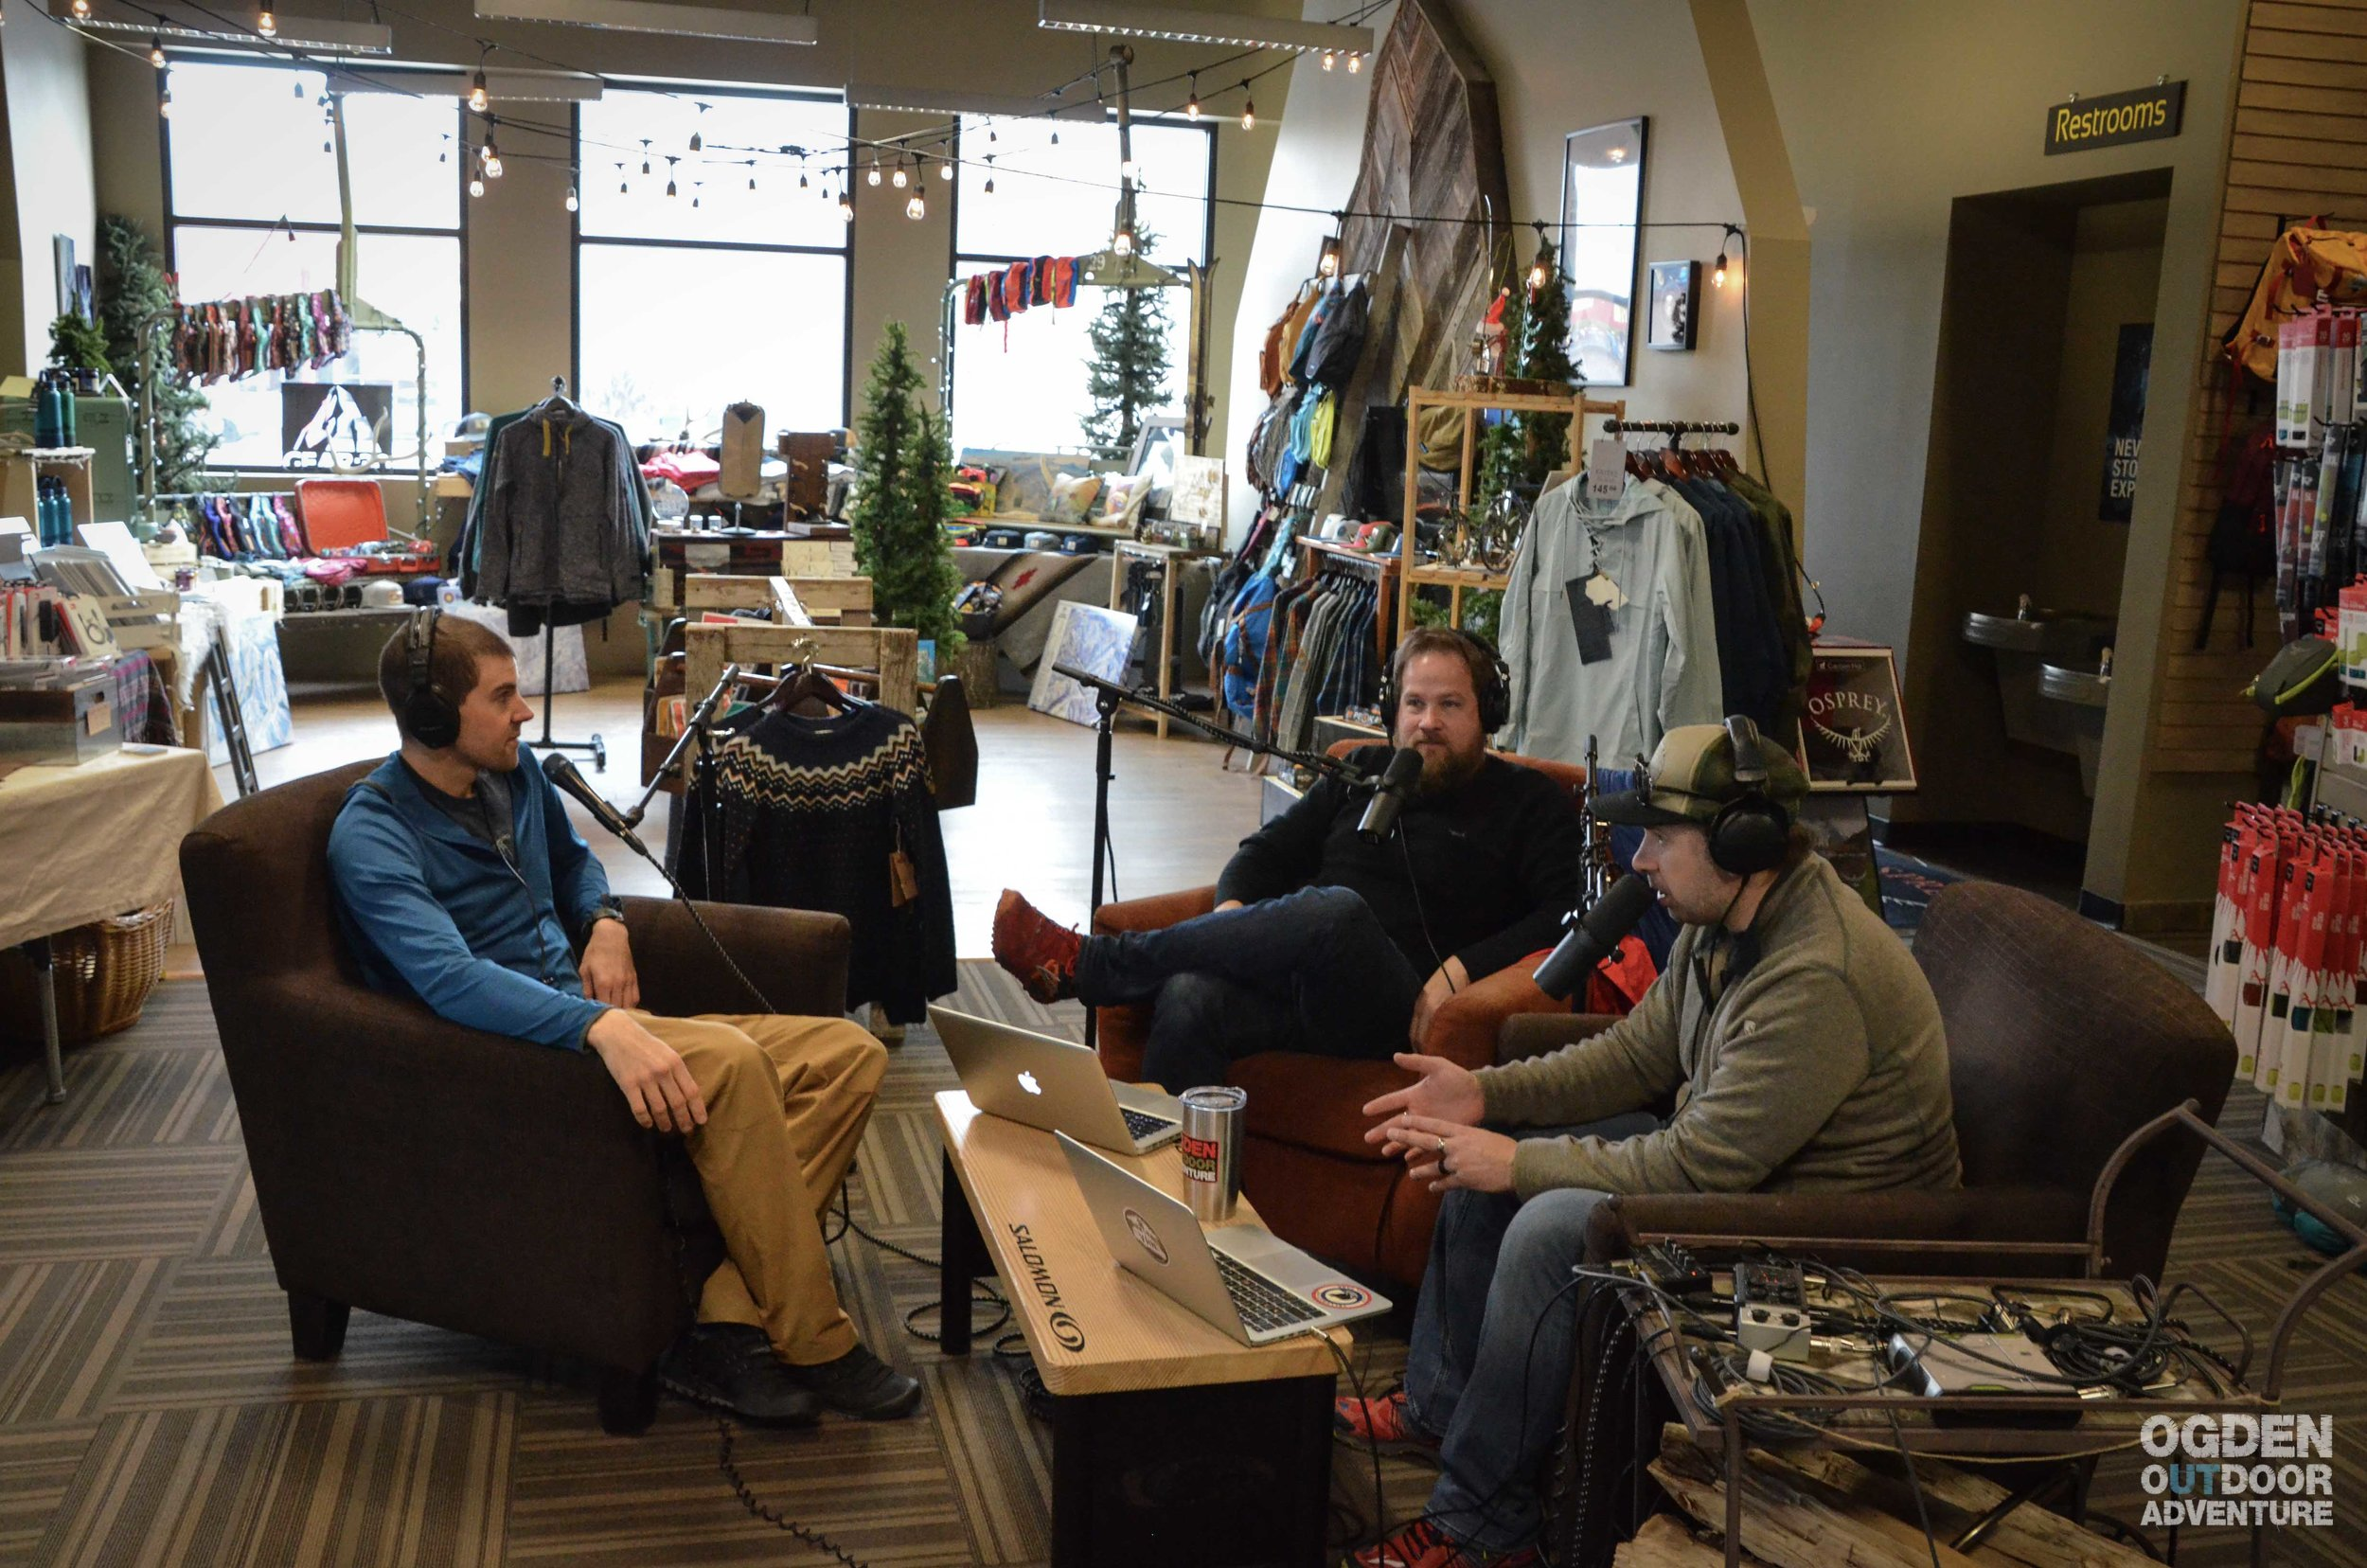 Podcasting at GEAR:30, Ogden's Mountain Shop